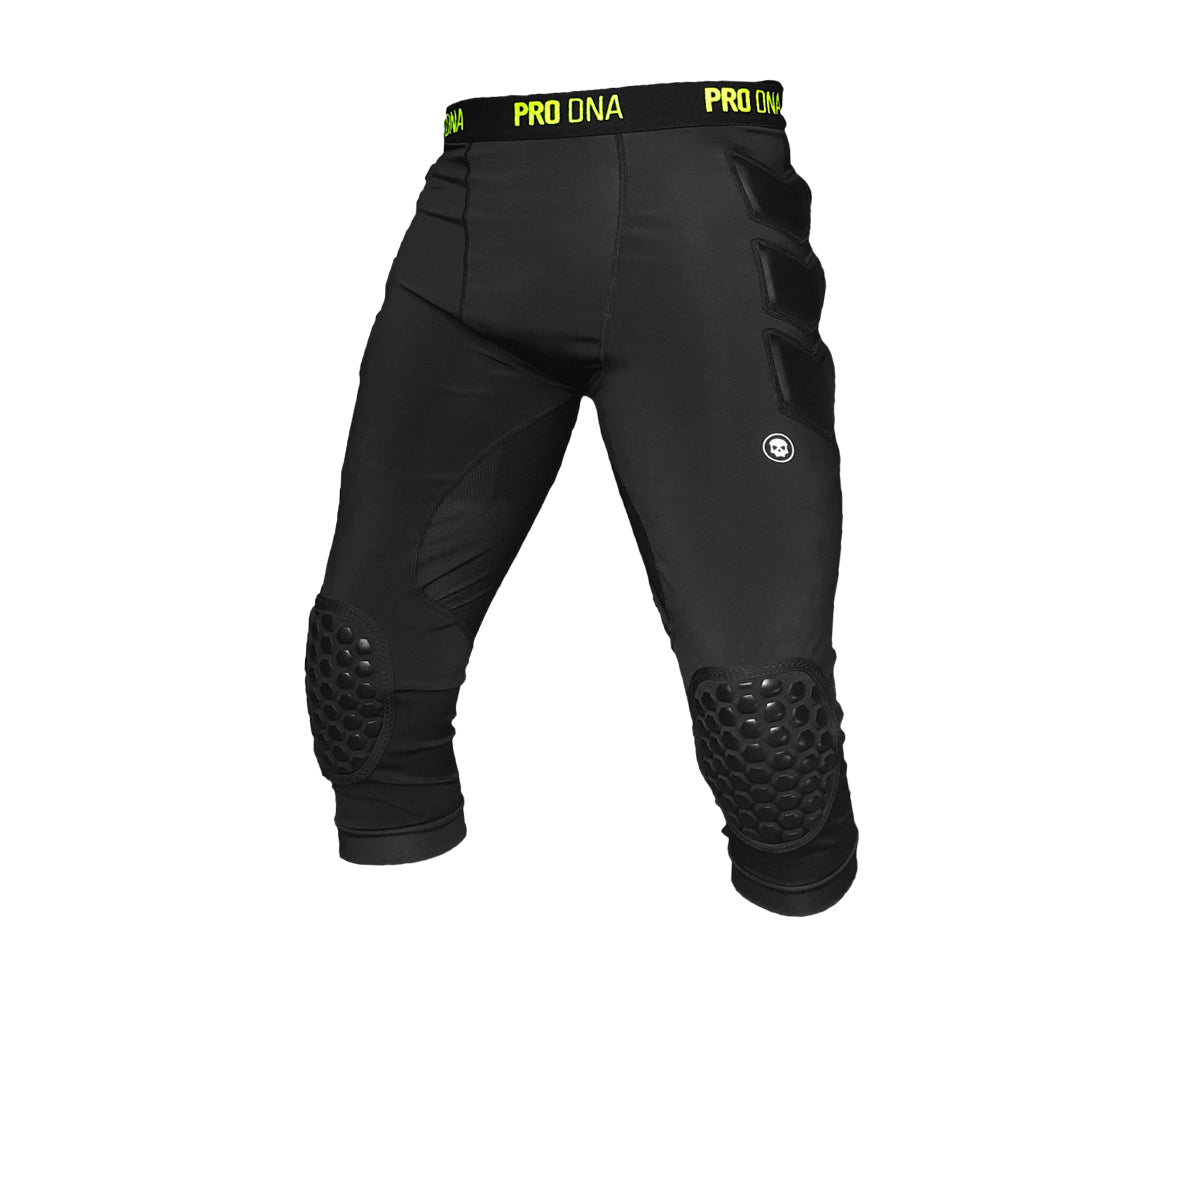 Infamous PRO DNA Slide Shorts